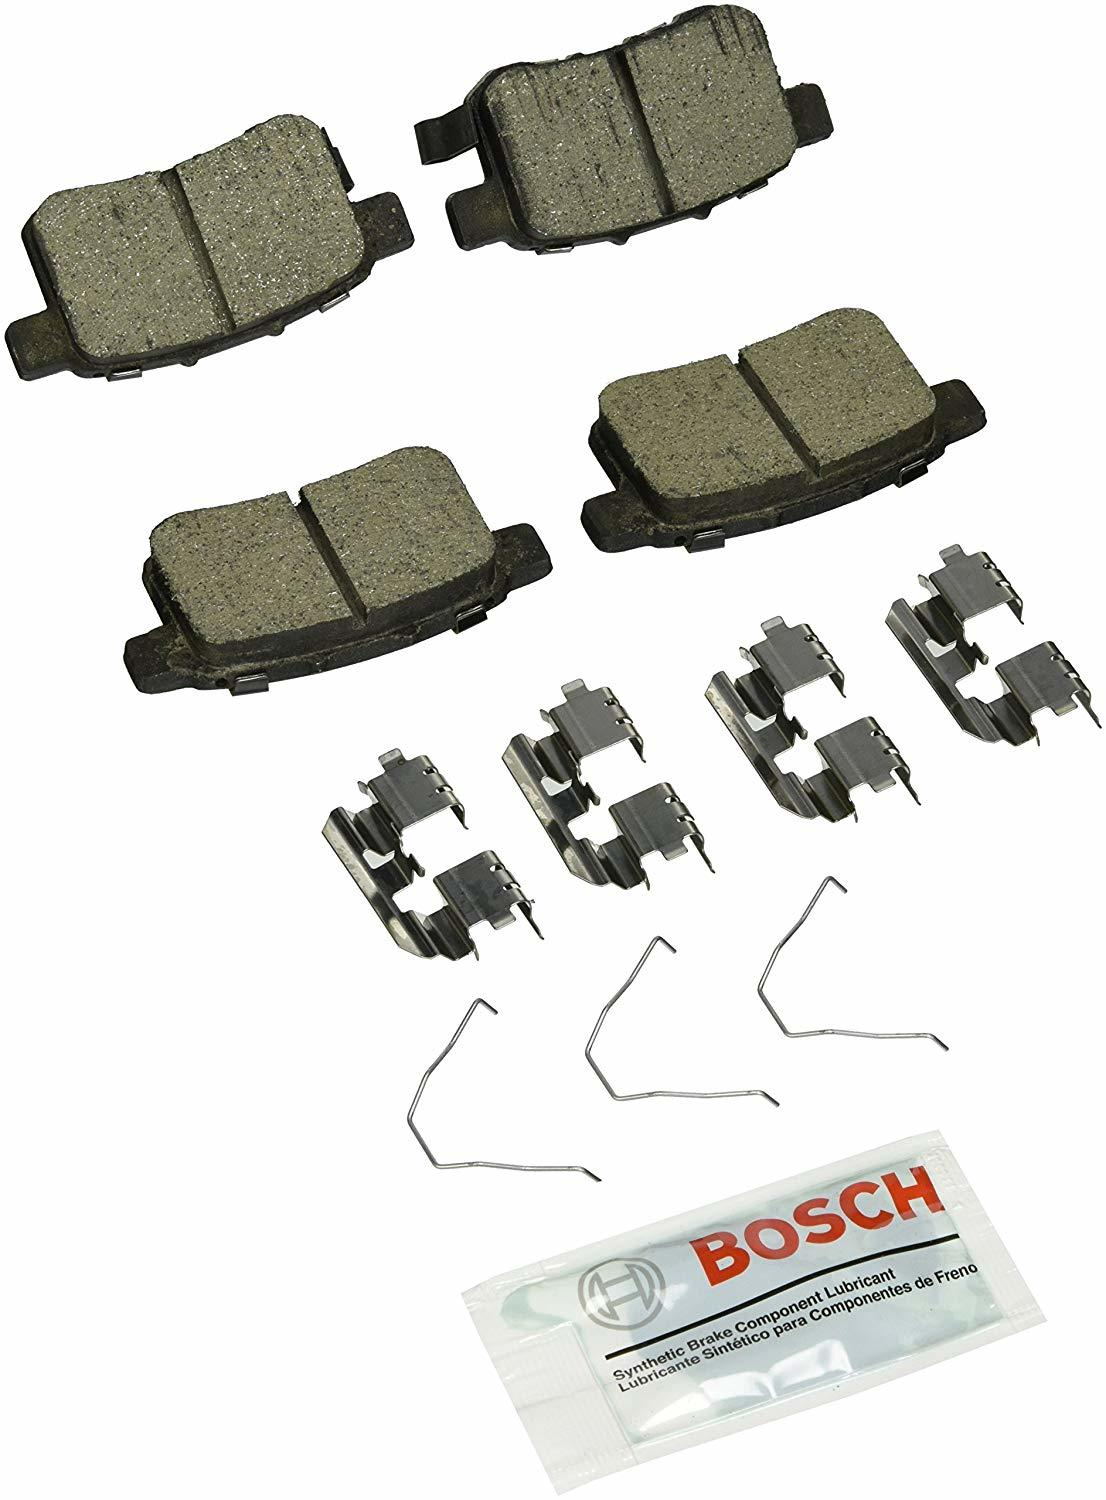 Bosch best brake pads